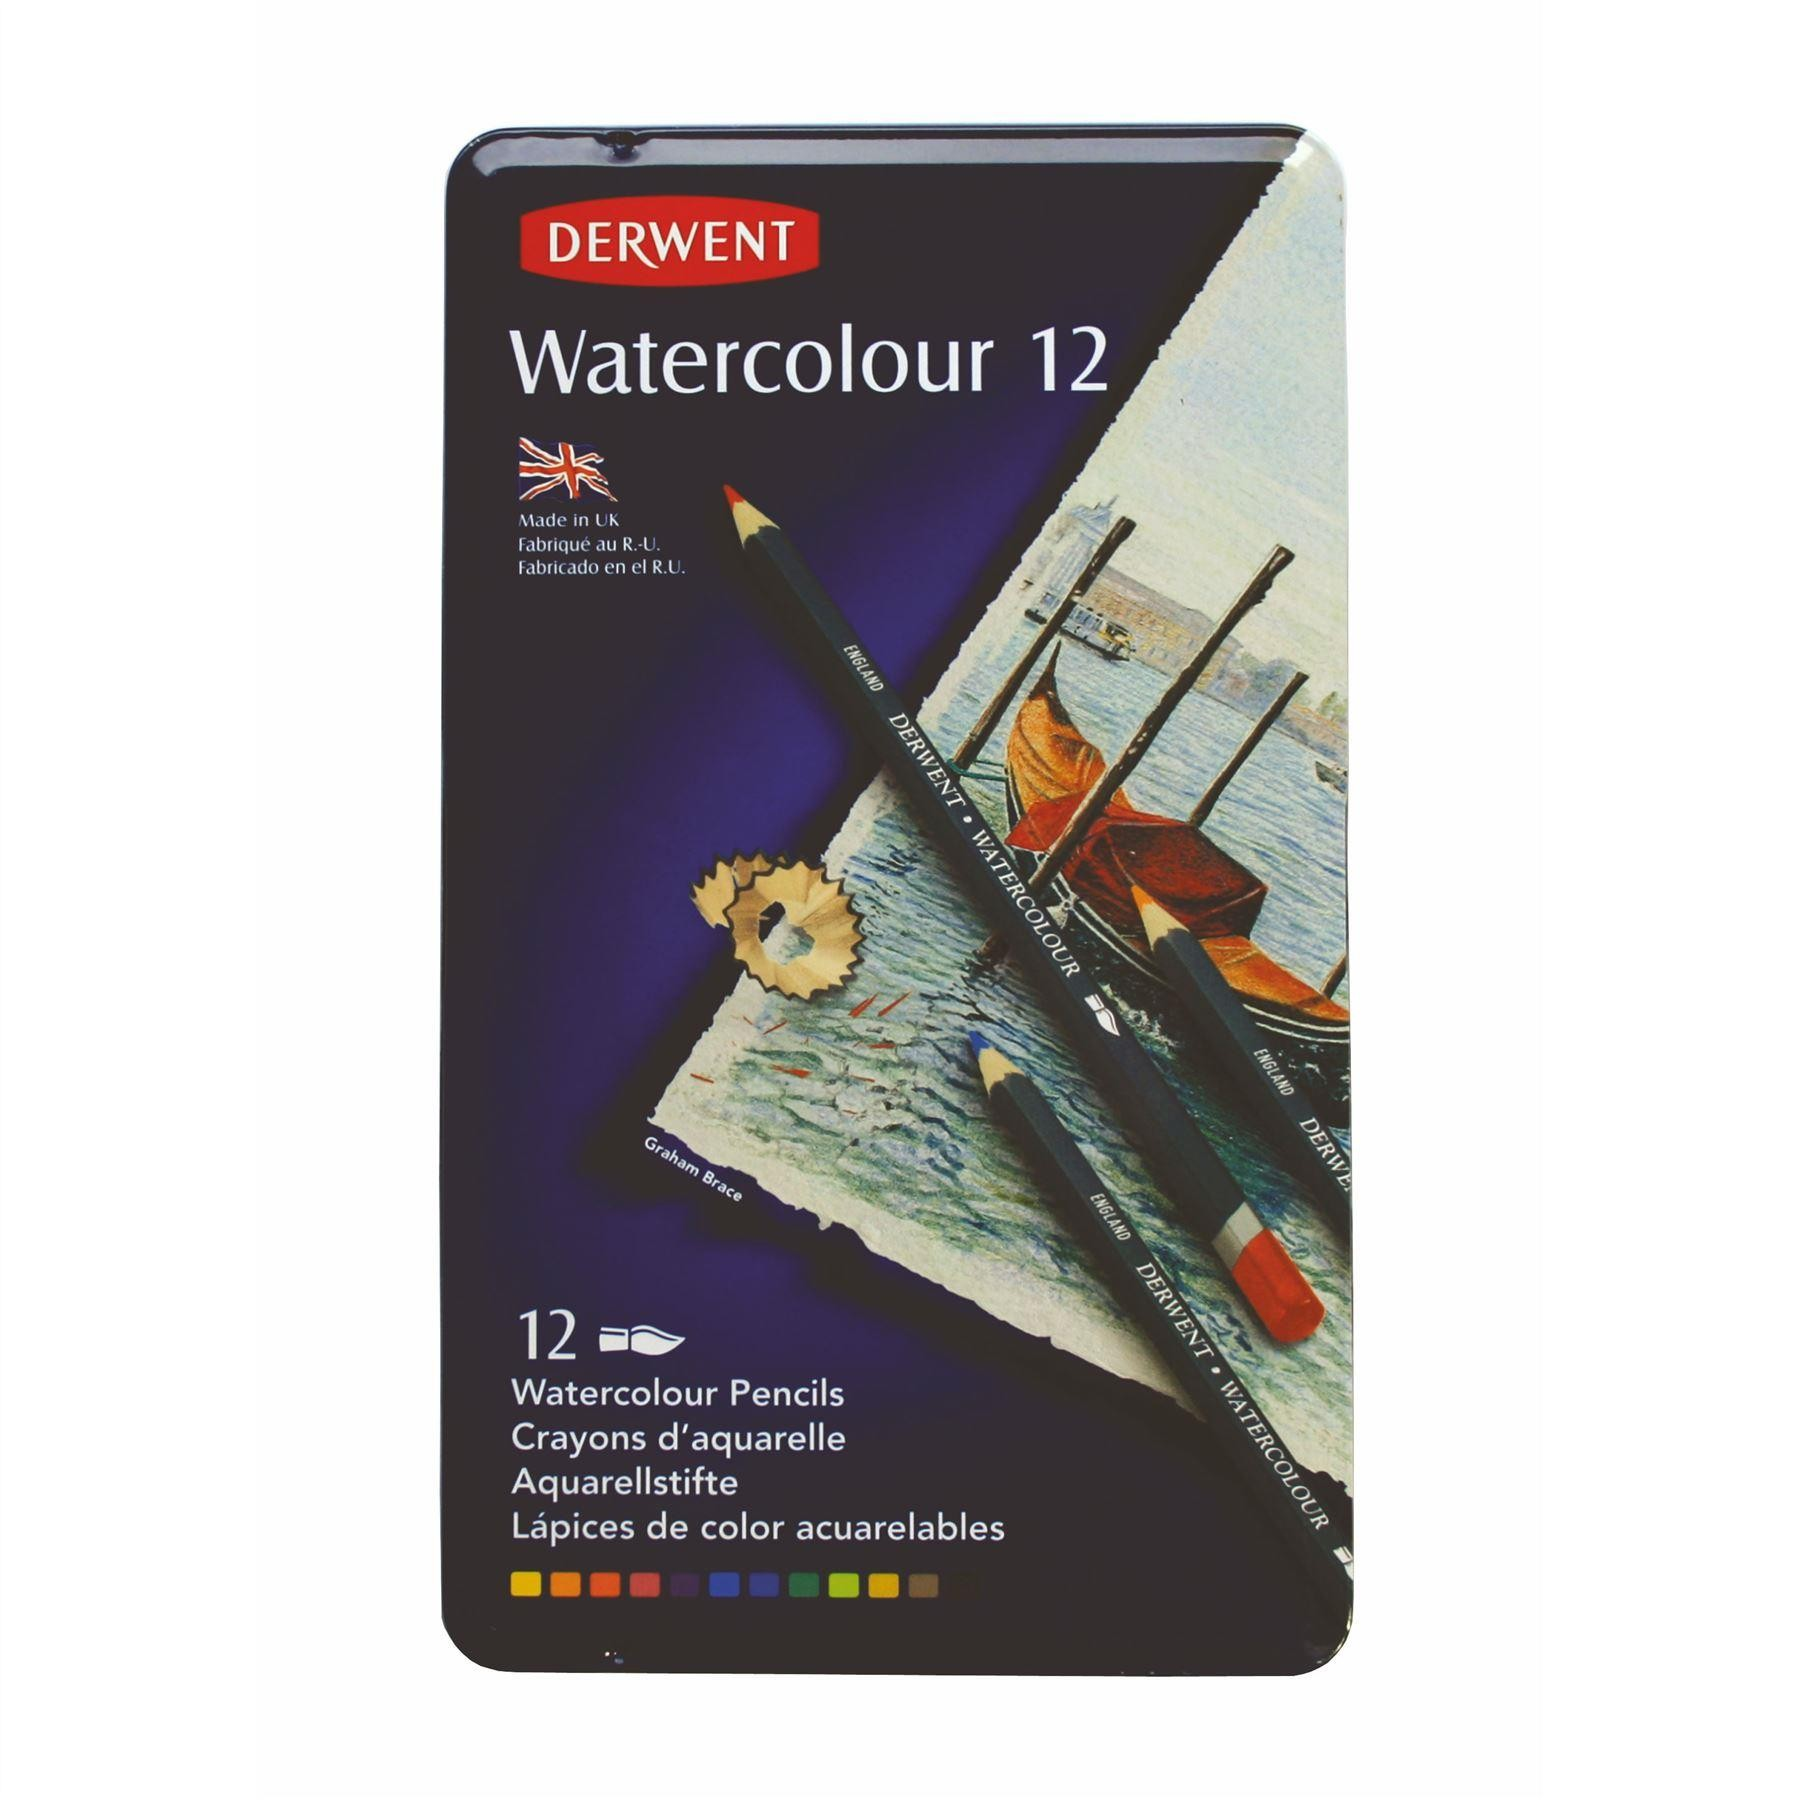 Derwent Watercolour 12 tin